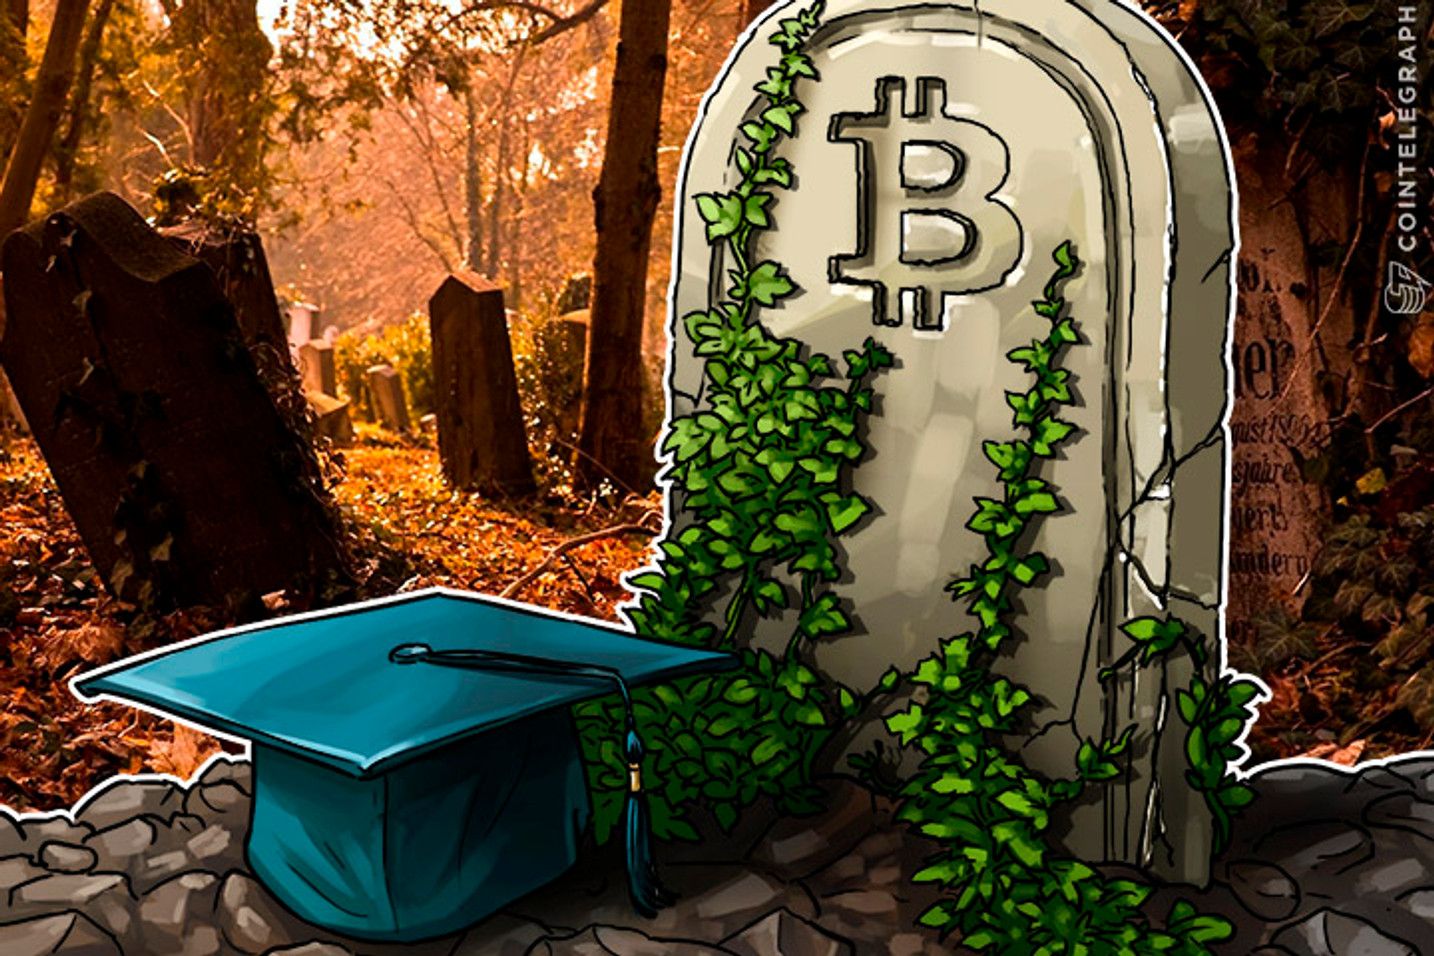 Ivy League Professor's Verdict on Death of Bitcoin: A Year After